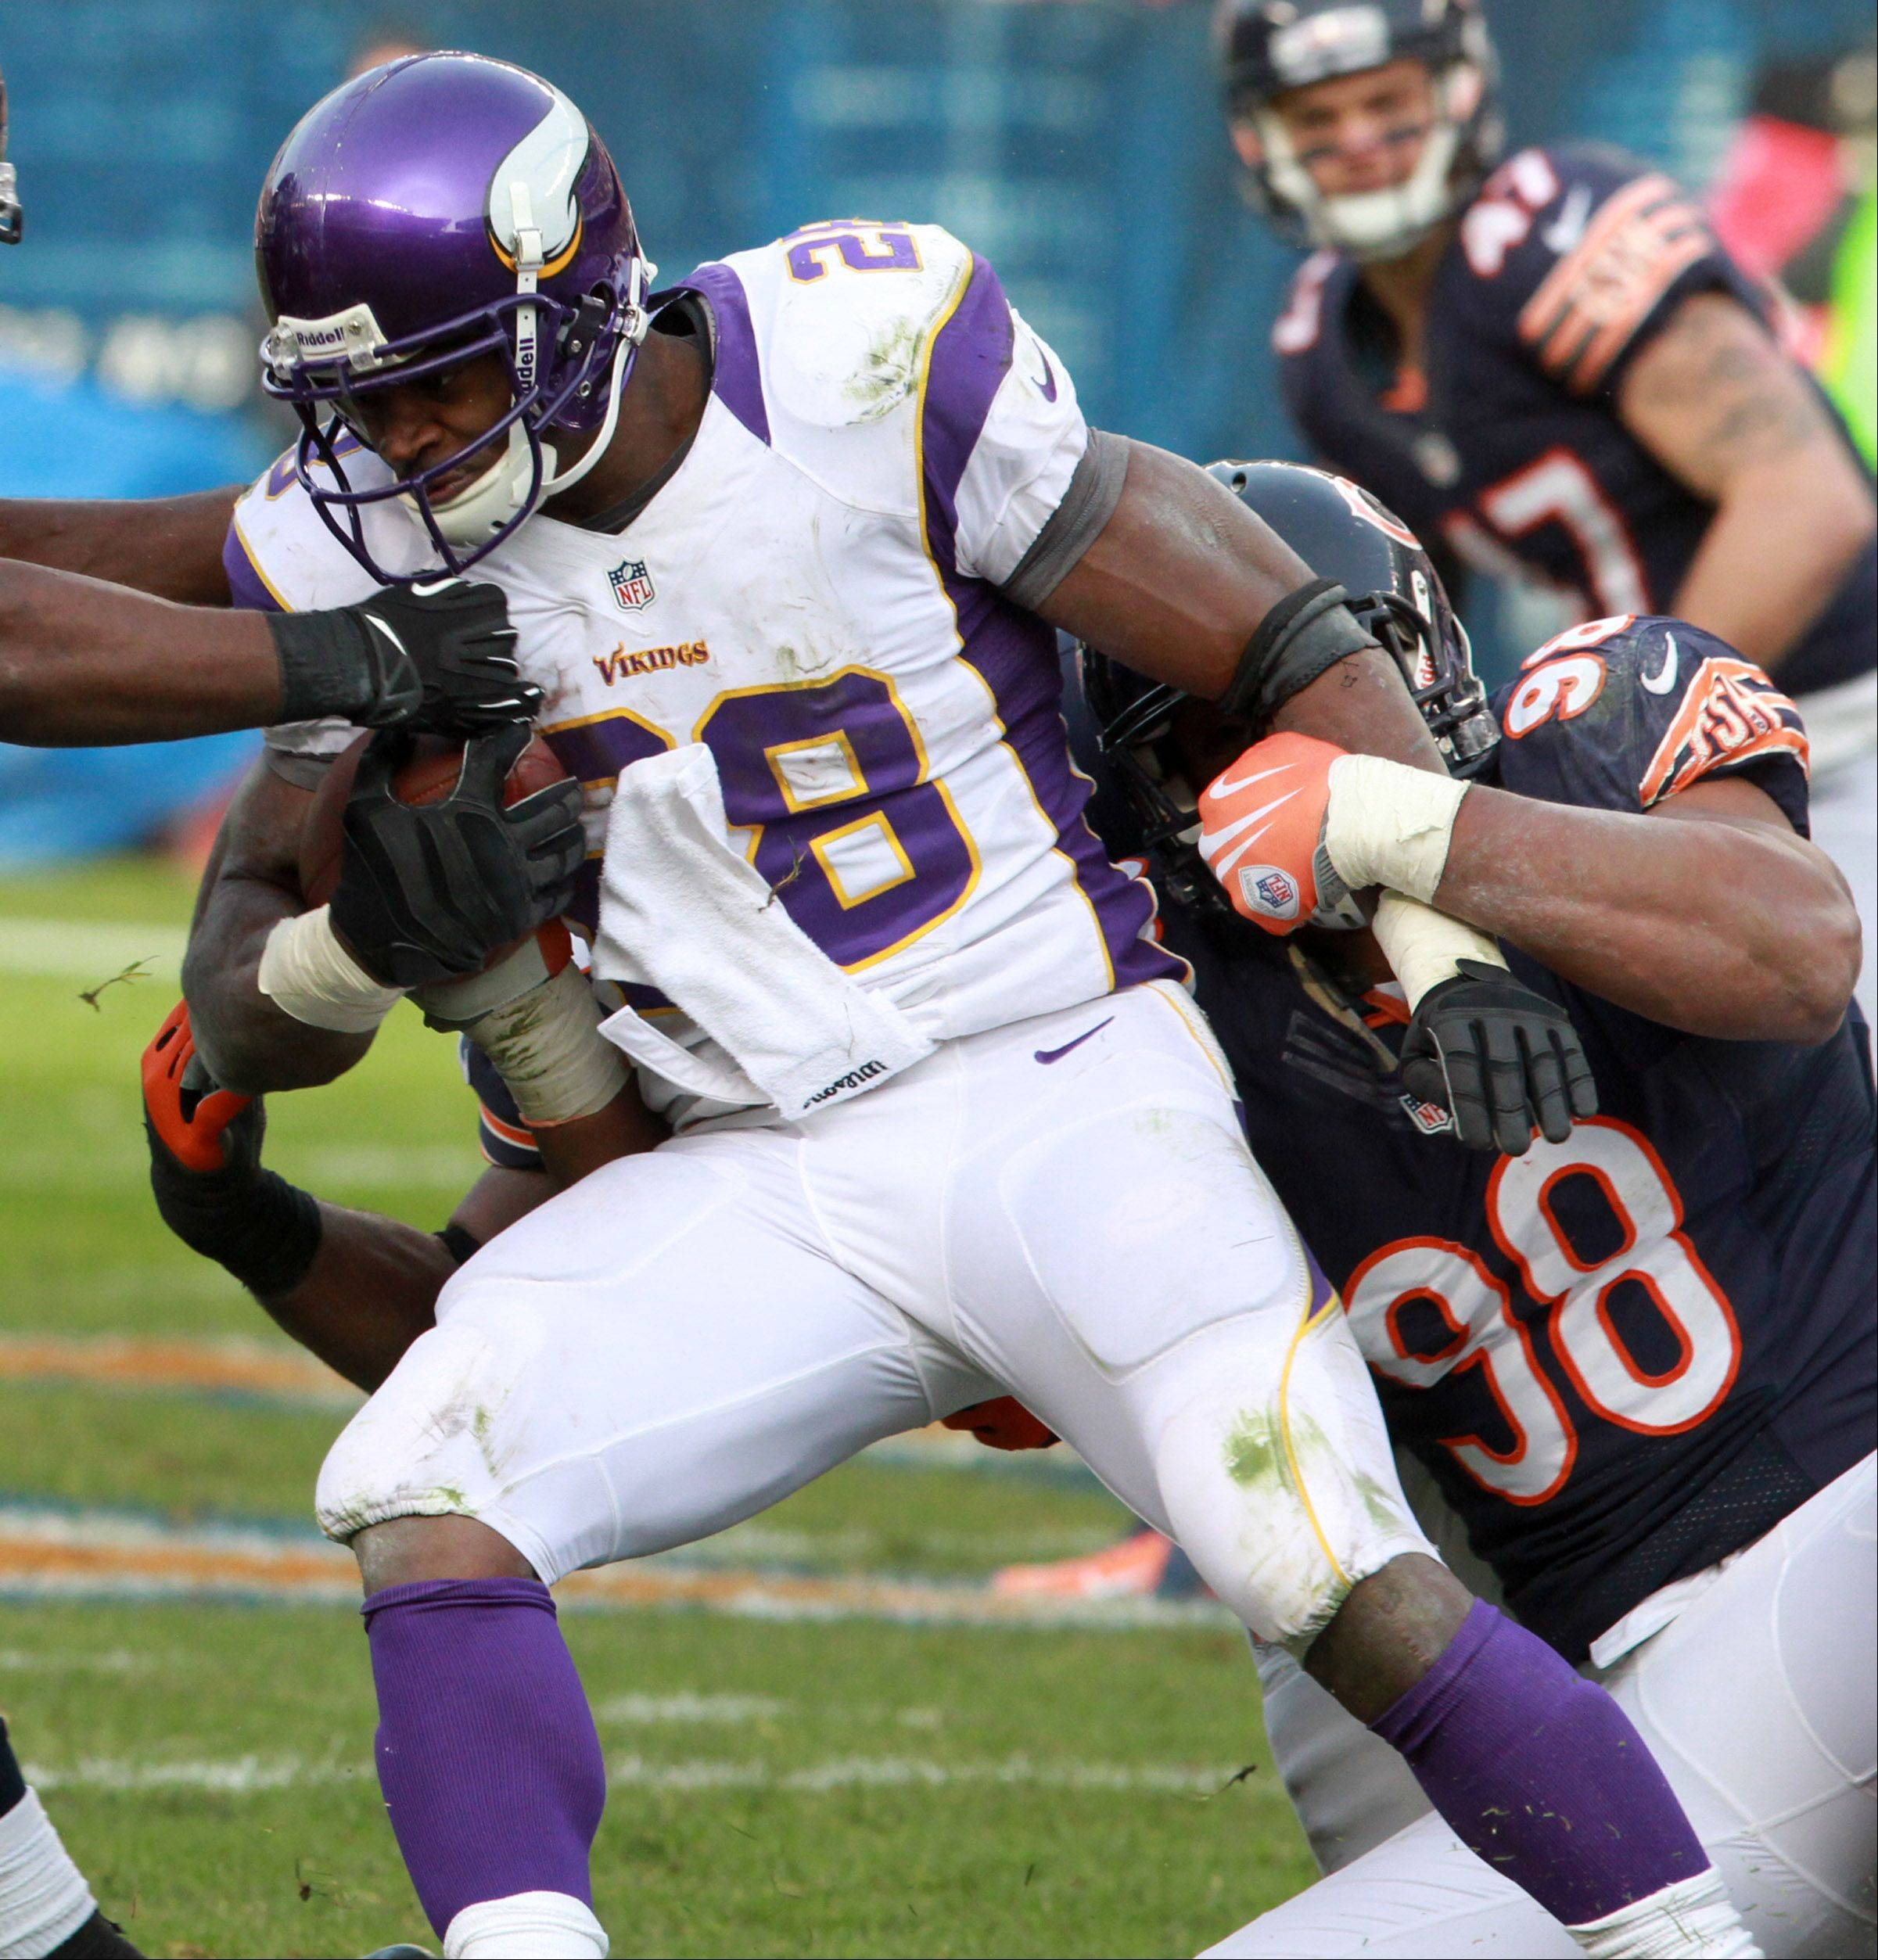 Vikings running back Adrian Peterson has a much higher rushing number in mind than the 2,097 he collected last season.